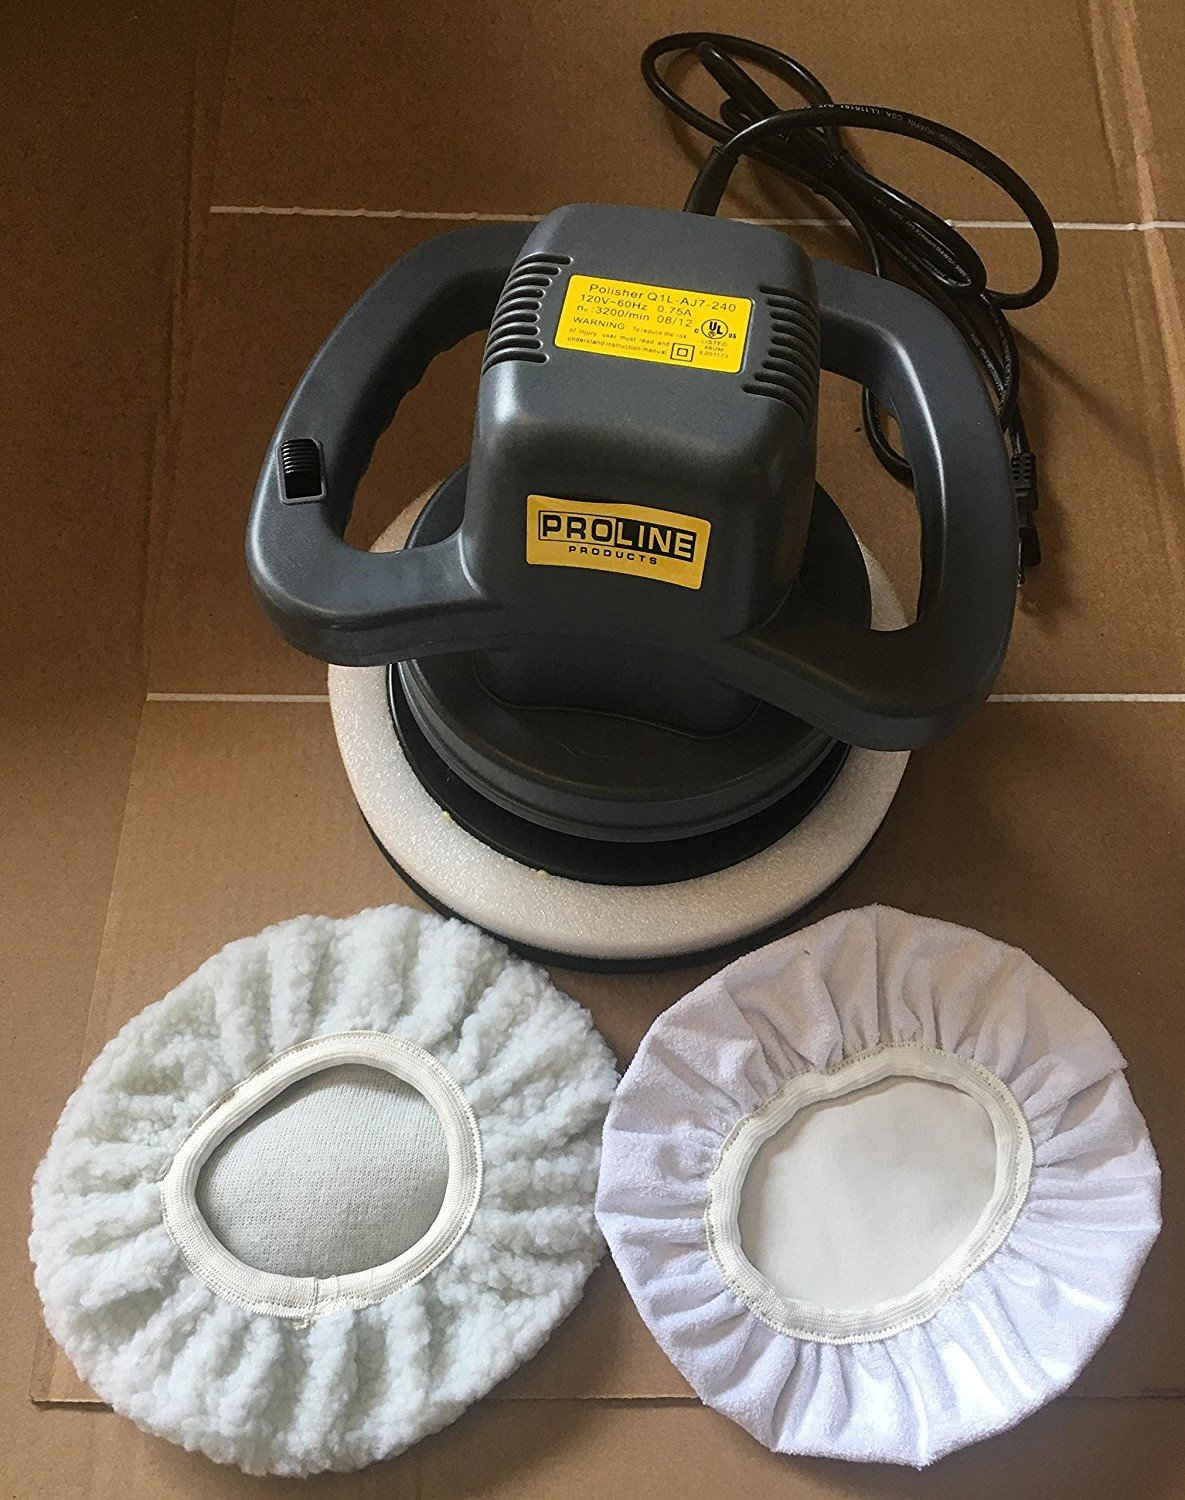 Prolineproduct PWAX10 Orbital Waxer/Polisher